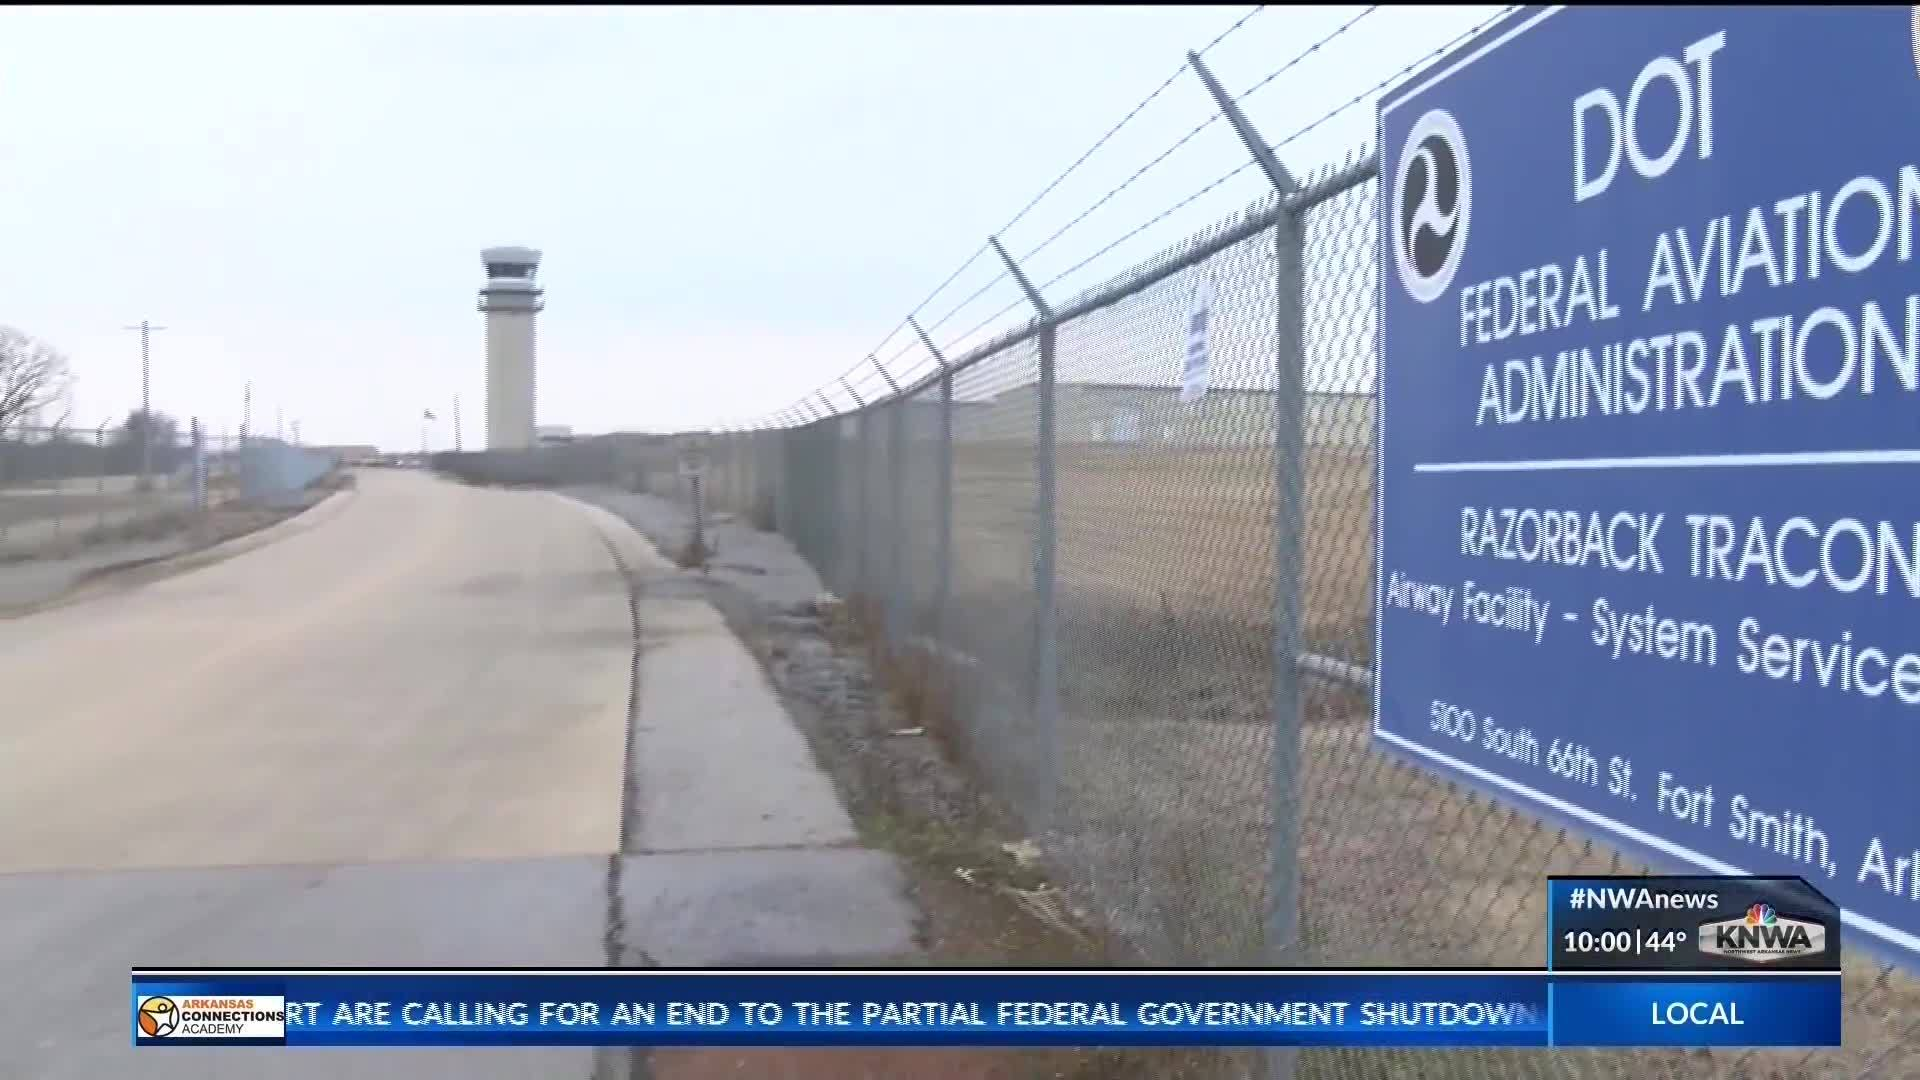 FAA_Working_Without_Pay_KNWA_8_20190117042722